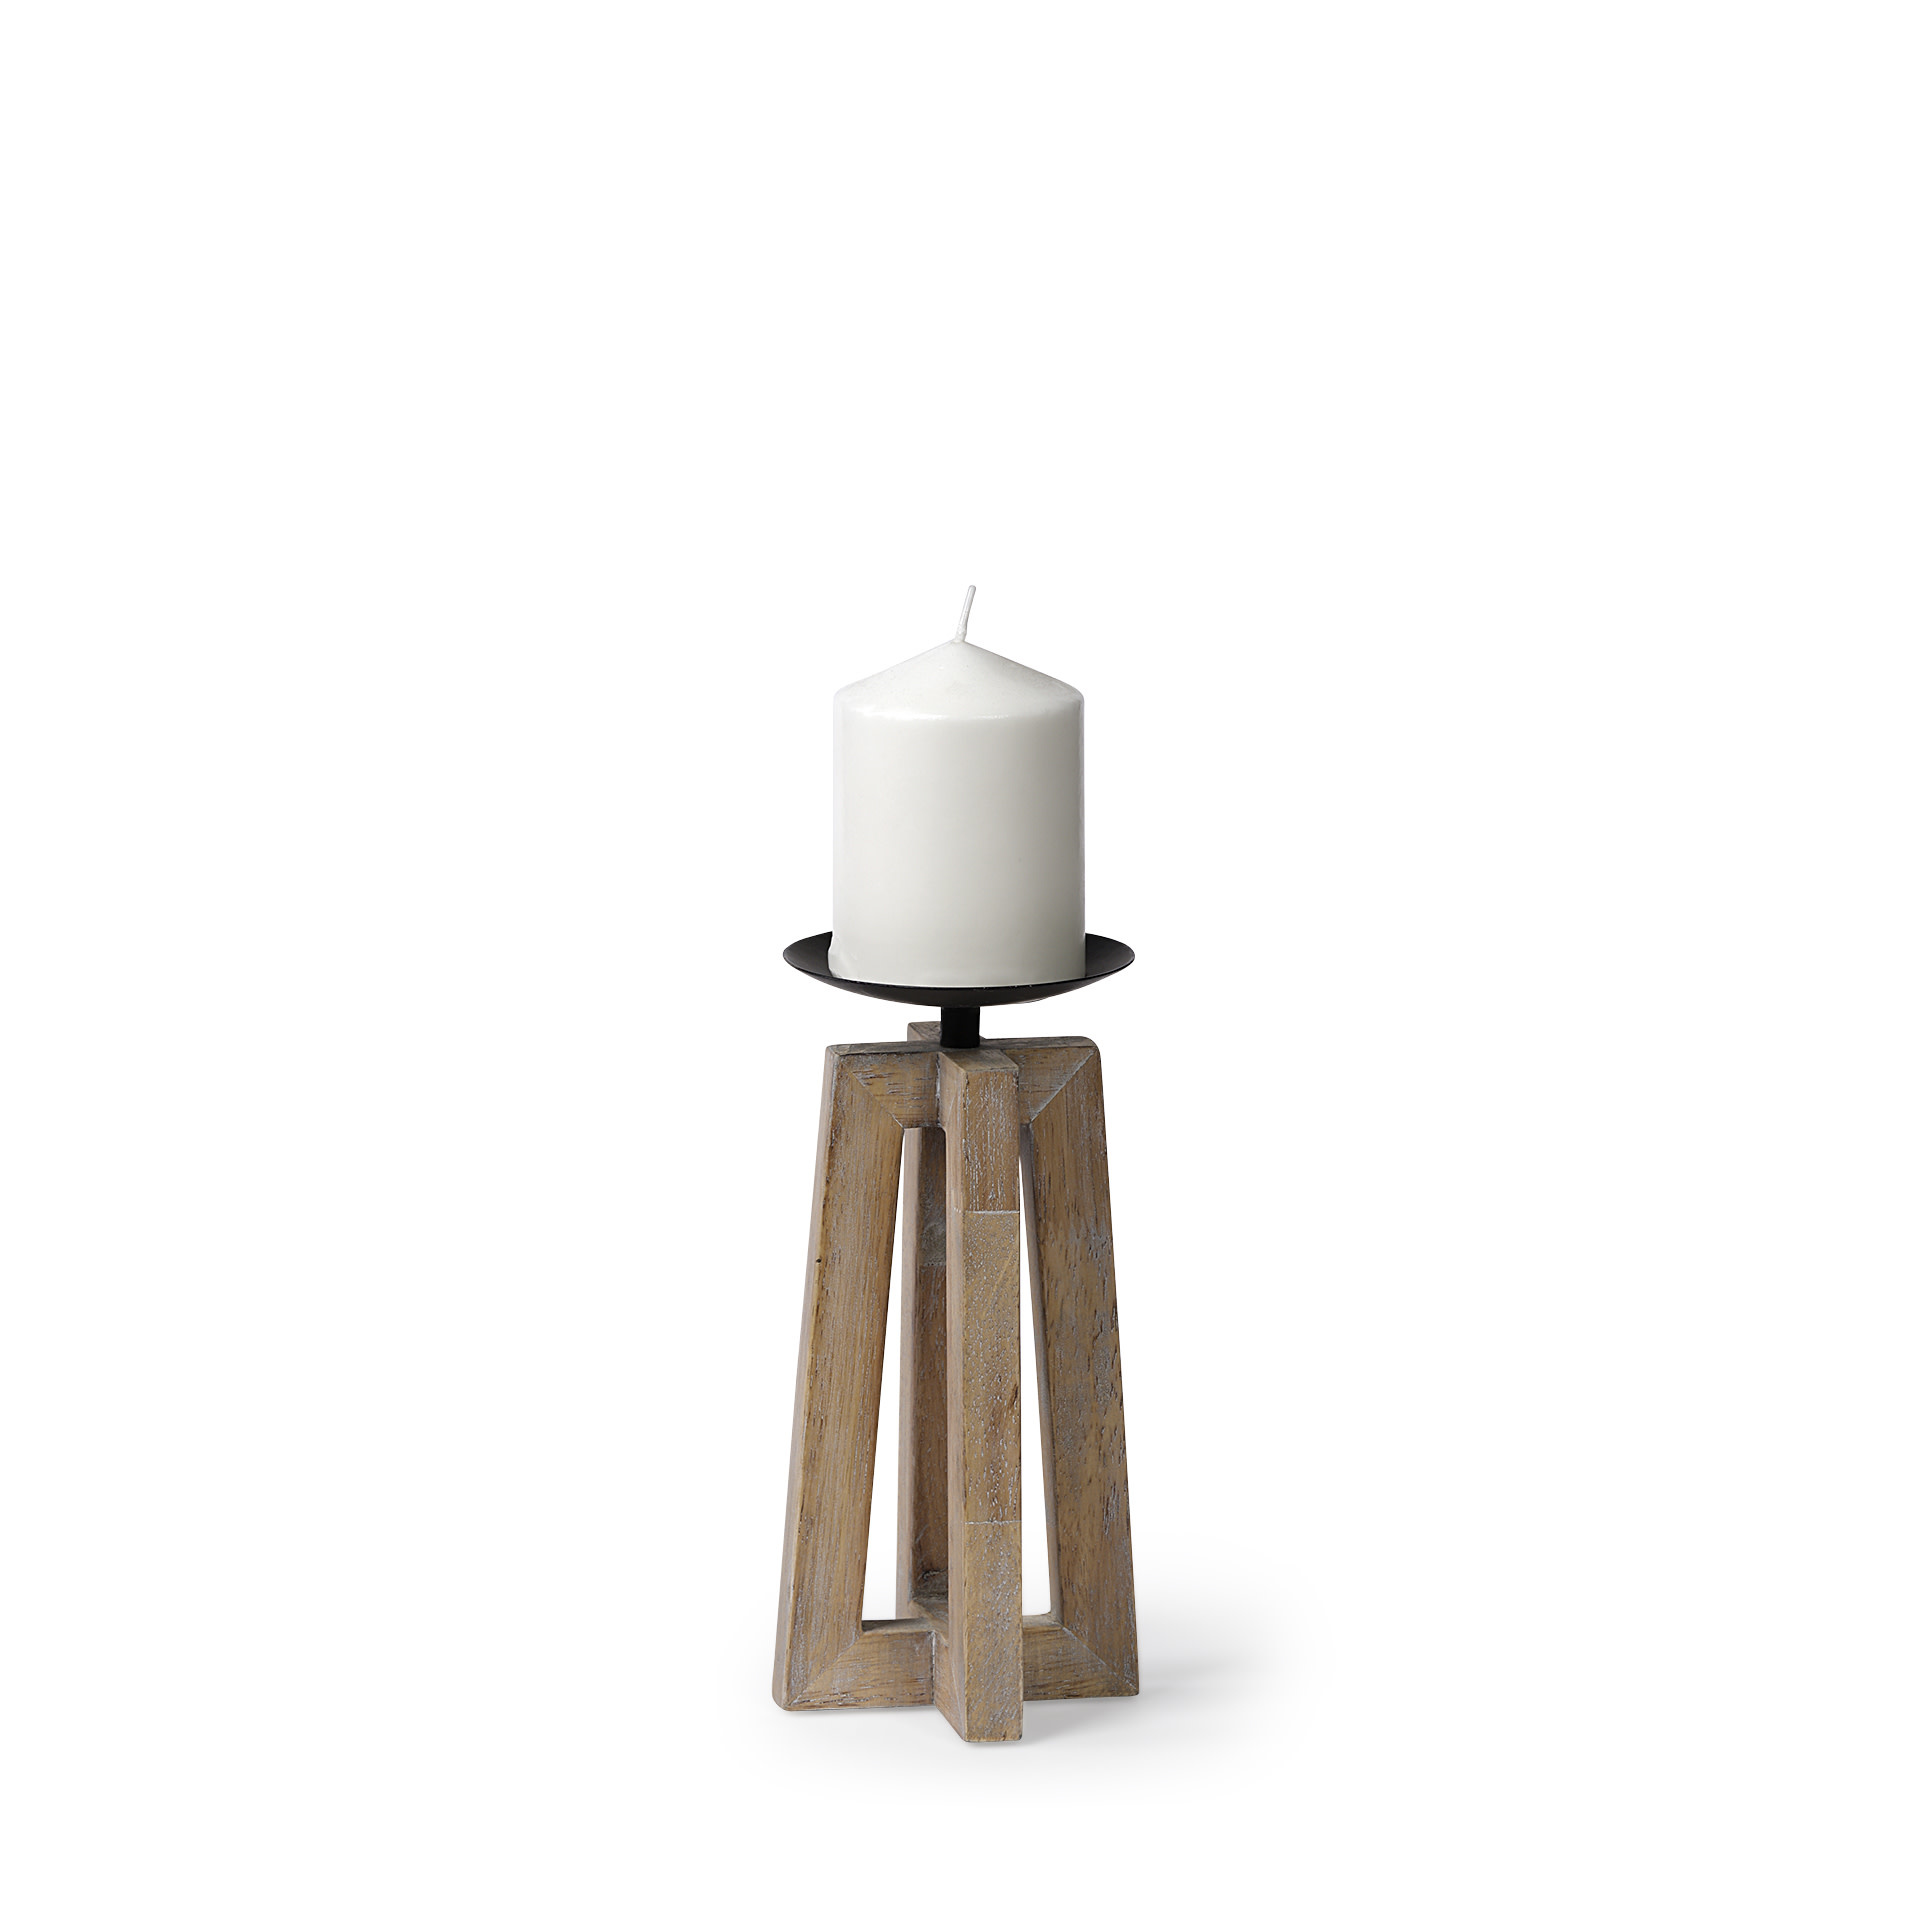 Astra I Small Light Brown Wood Pedestal Base Table Candle Holder